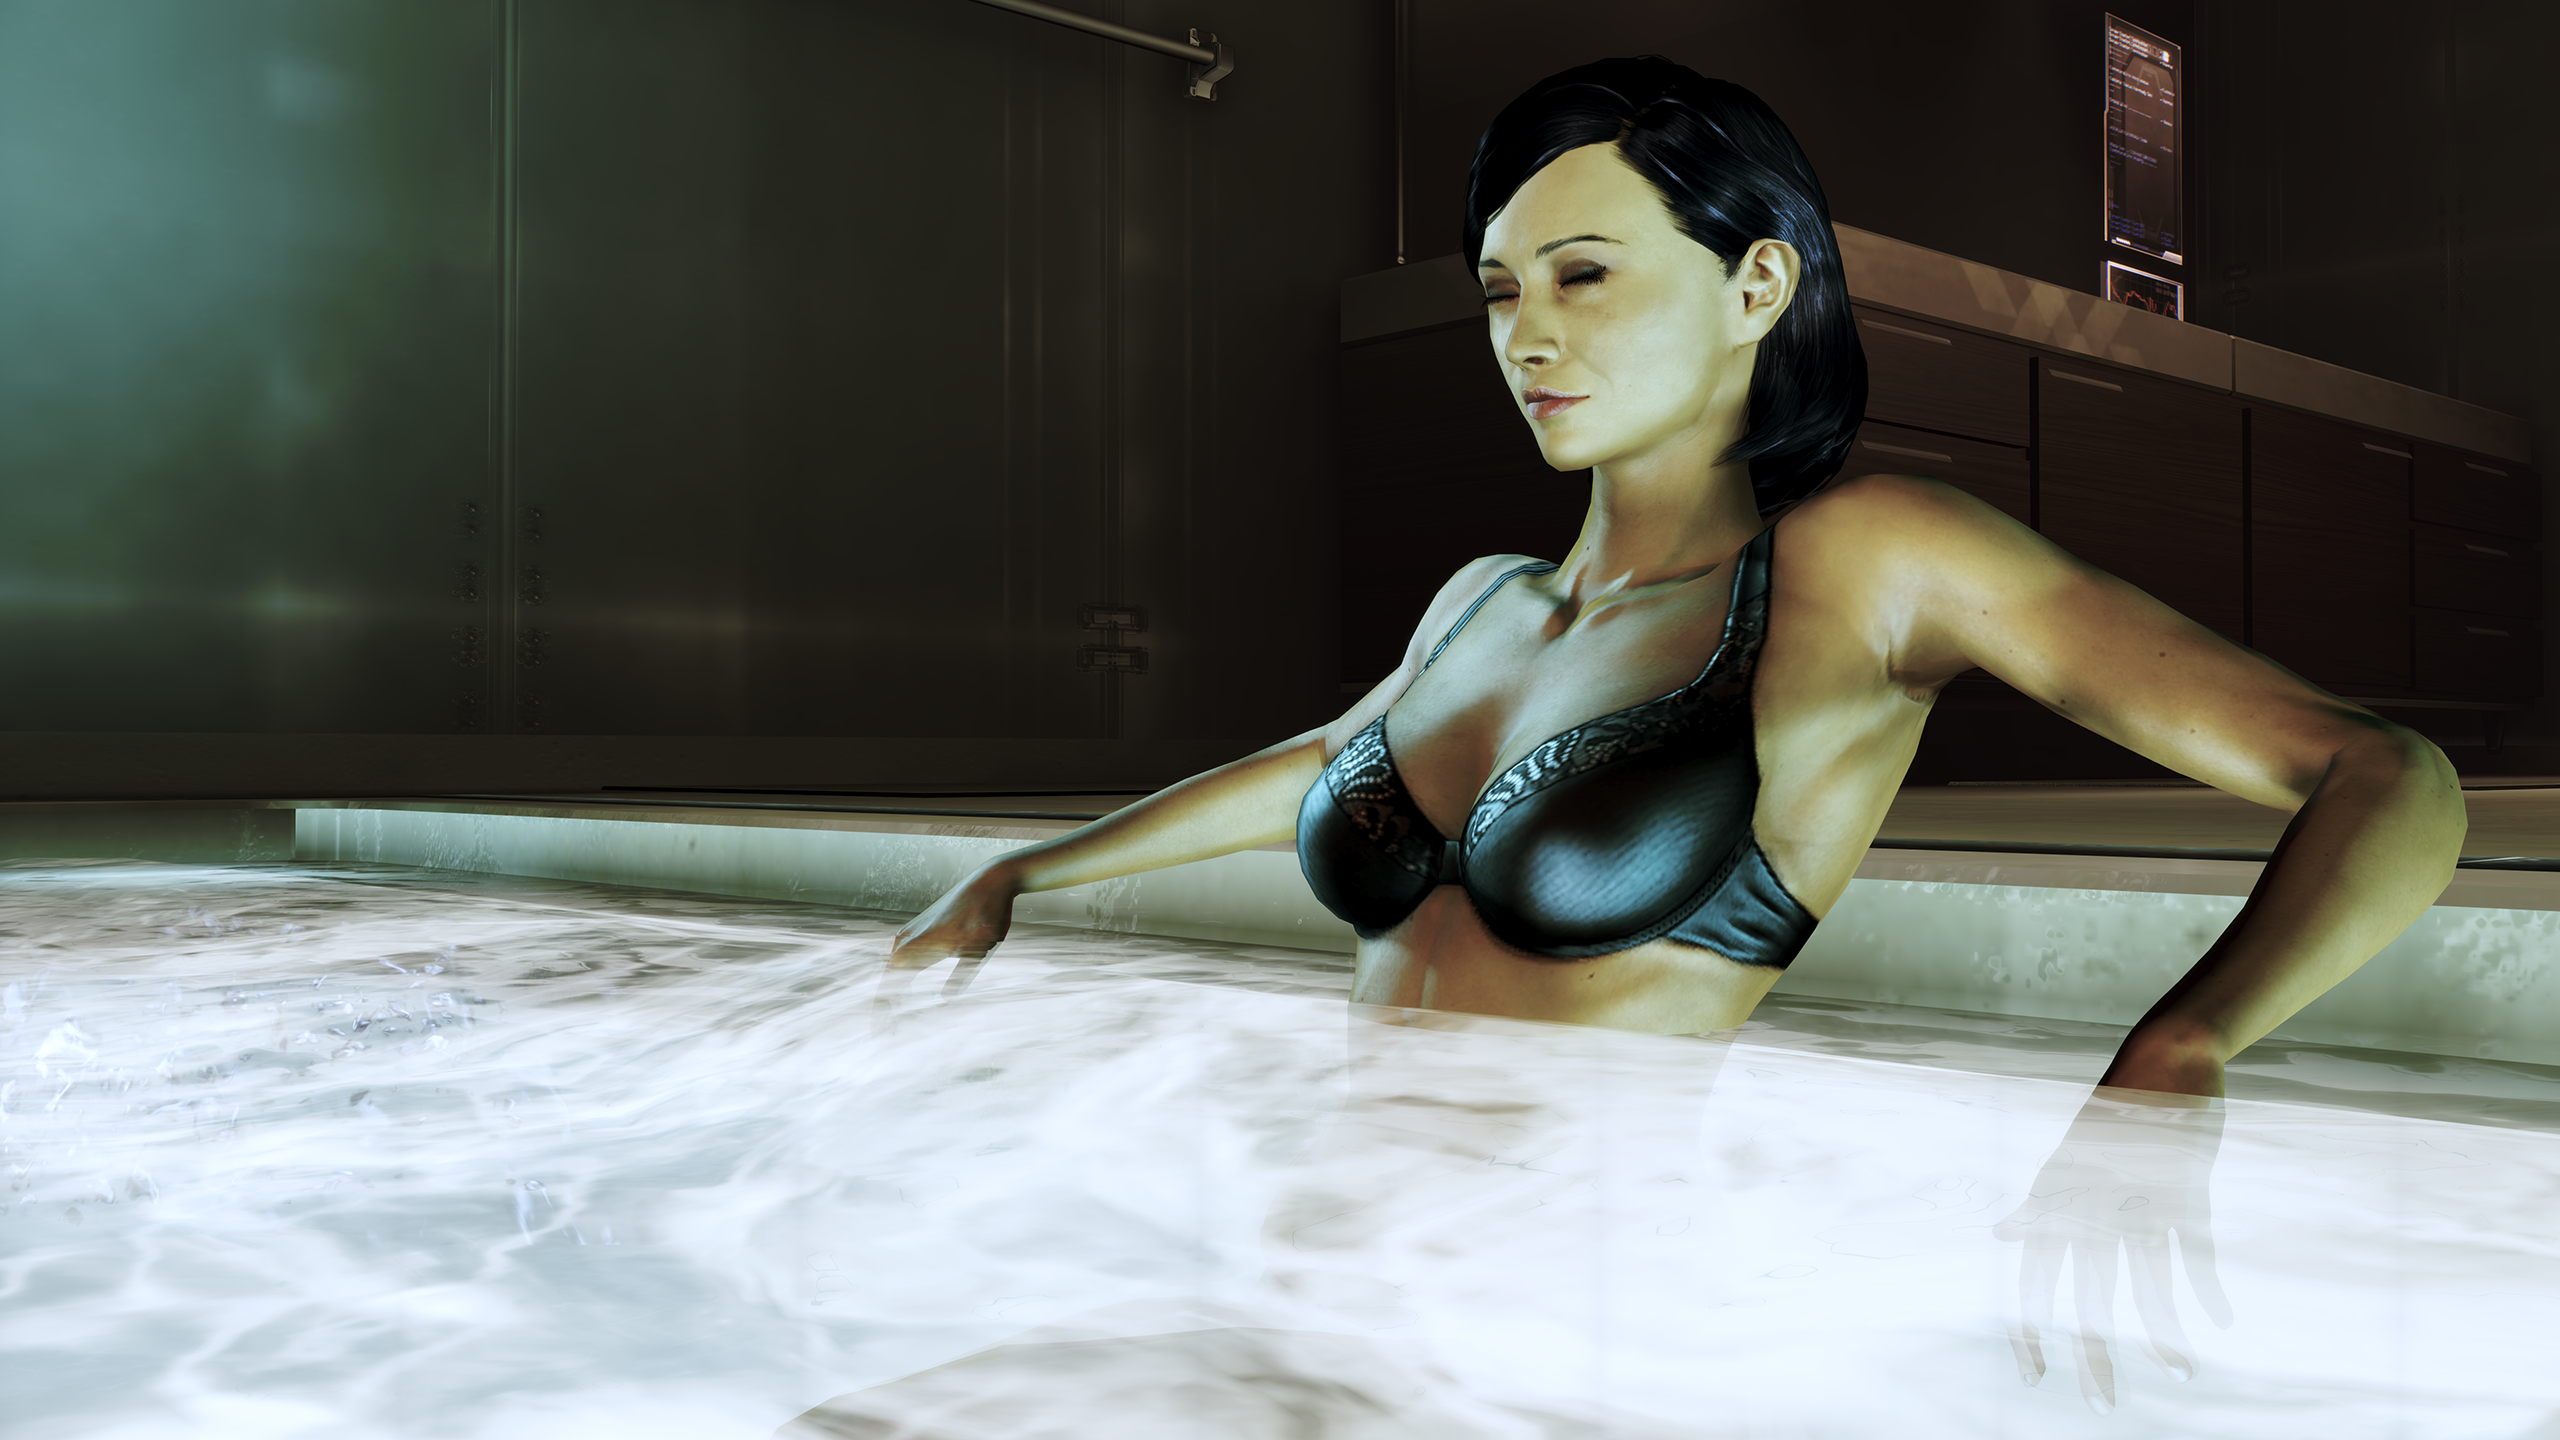 All the girls in masseffect 3d pics smut movies